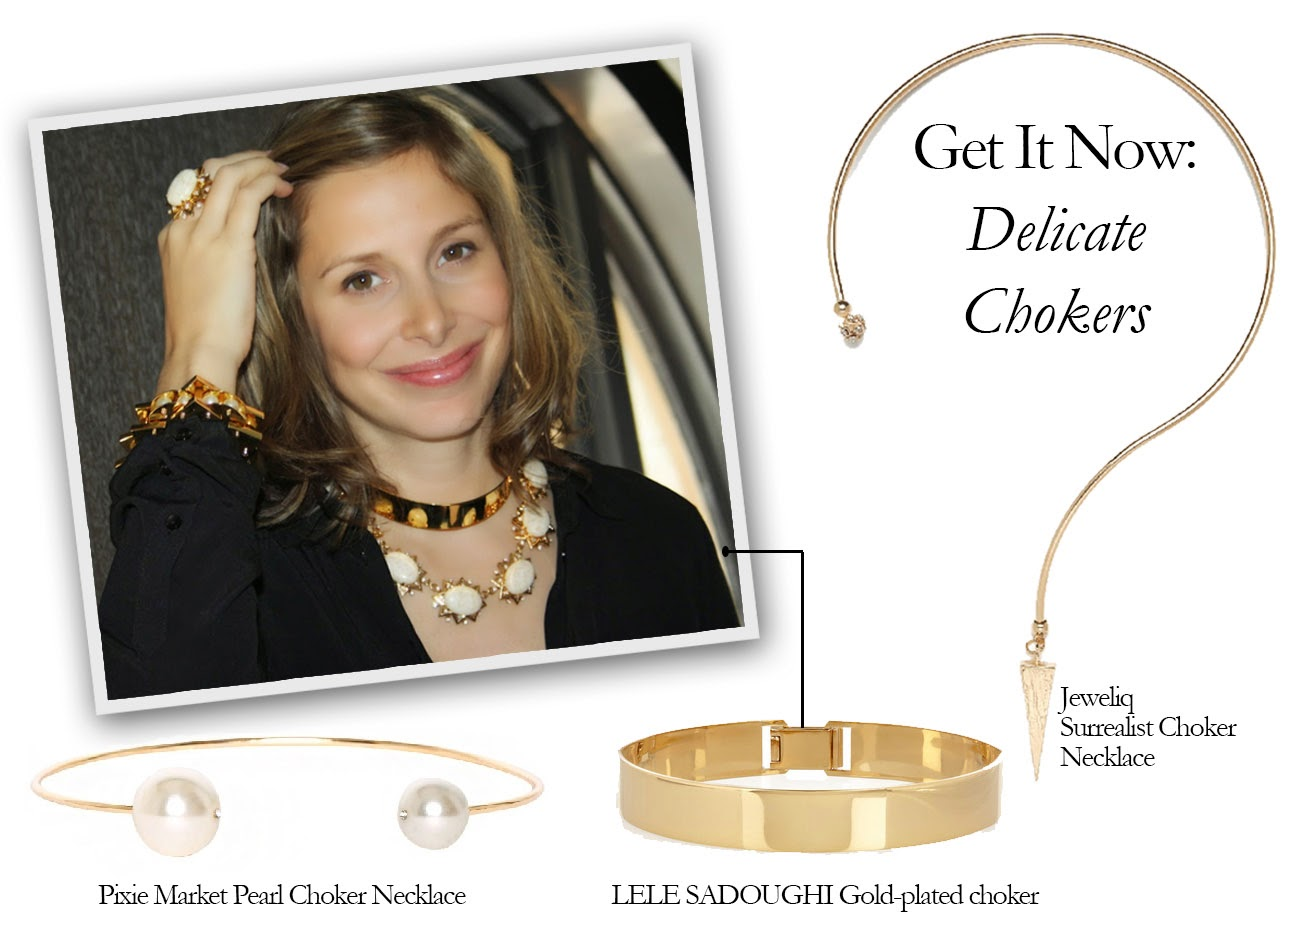 Get It Now: Delicate Chokers